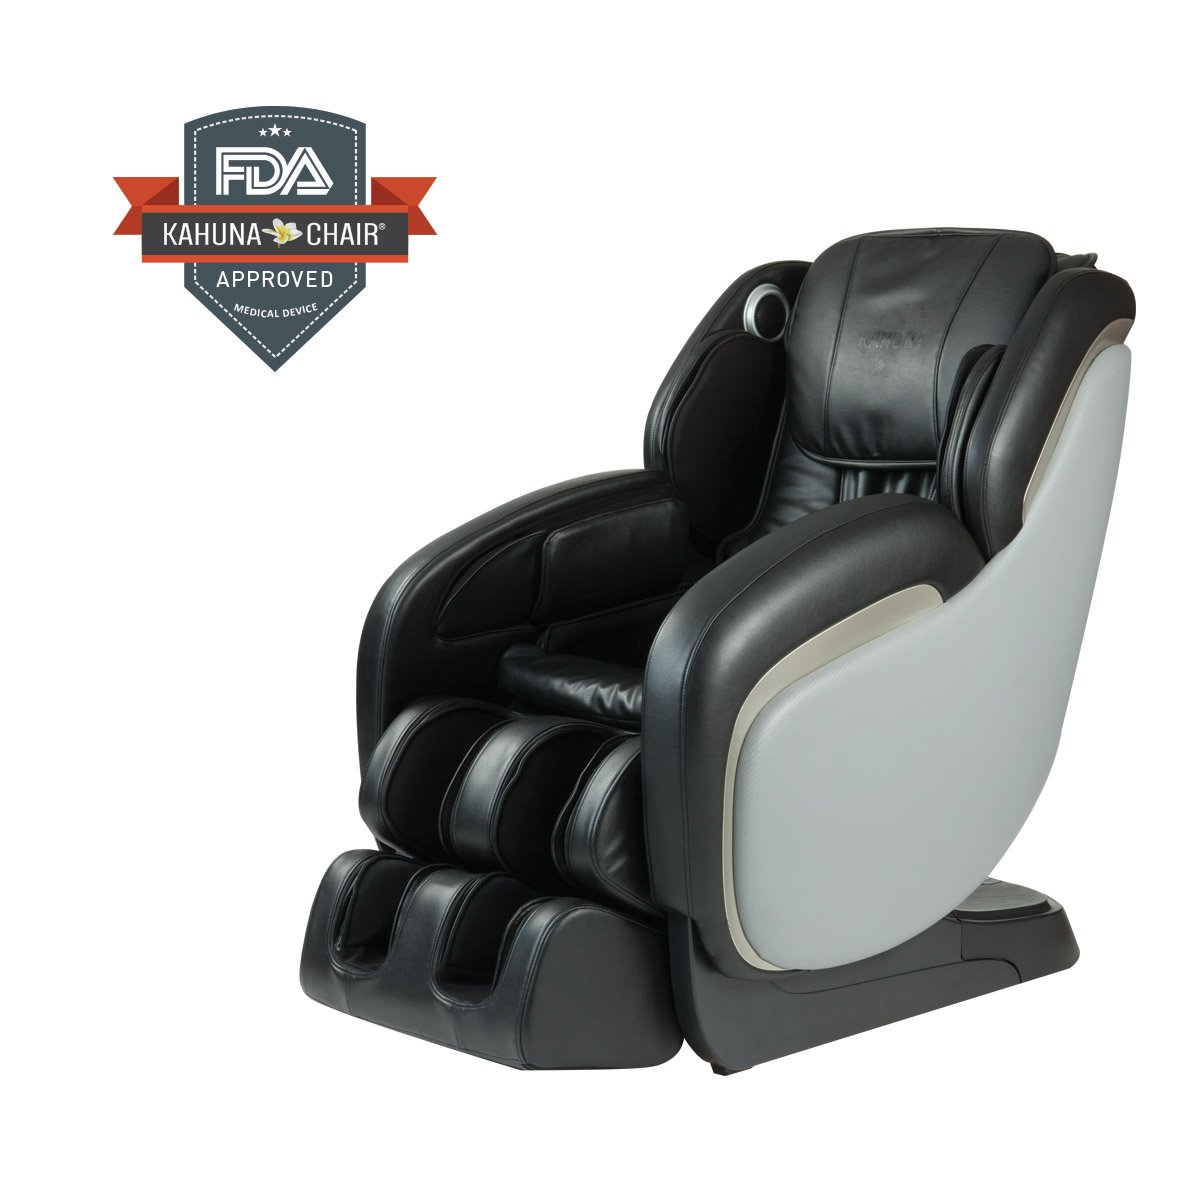 What's The Best Massage Chairs For 2019? 9